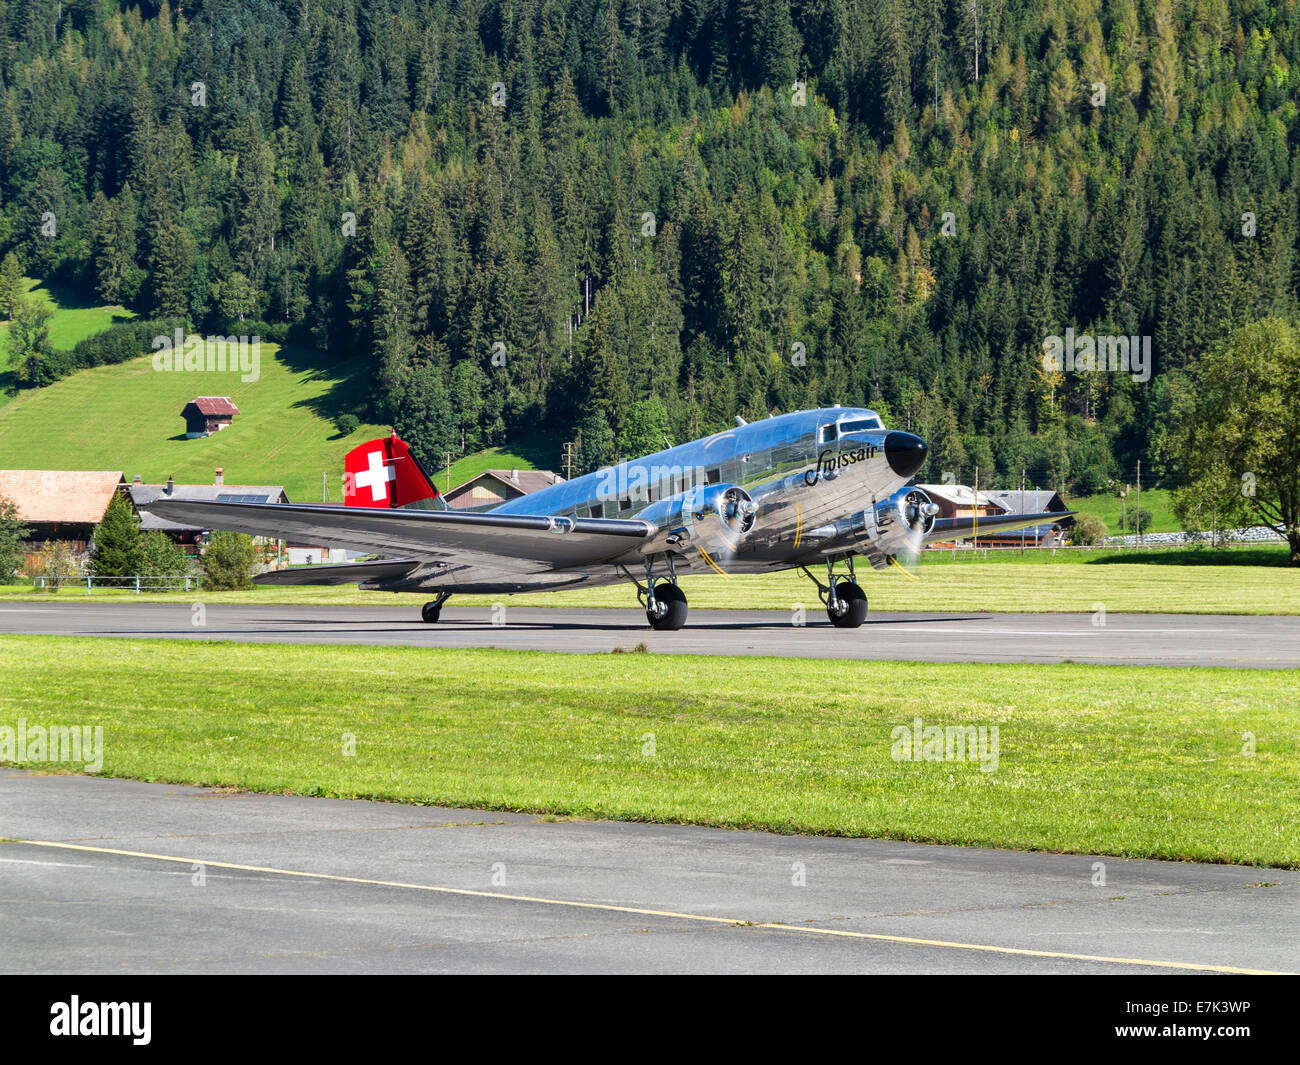 A restored Swissair Douglas DC-3 aircraft on the runway of an airfield between the mountains in central Switzerland - Stock Image